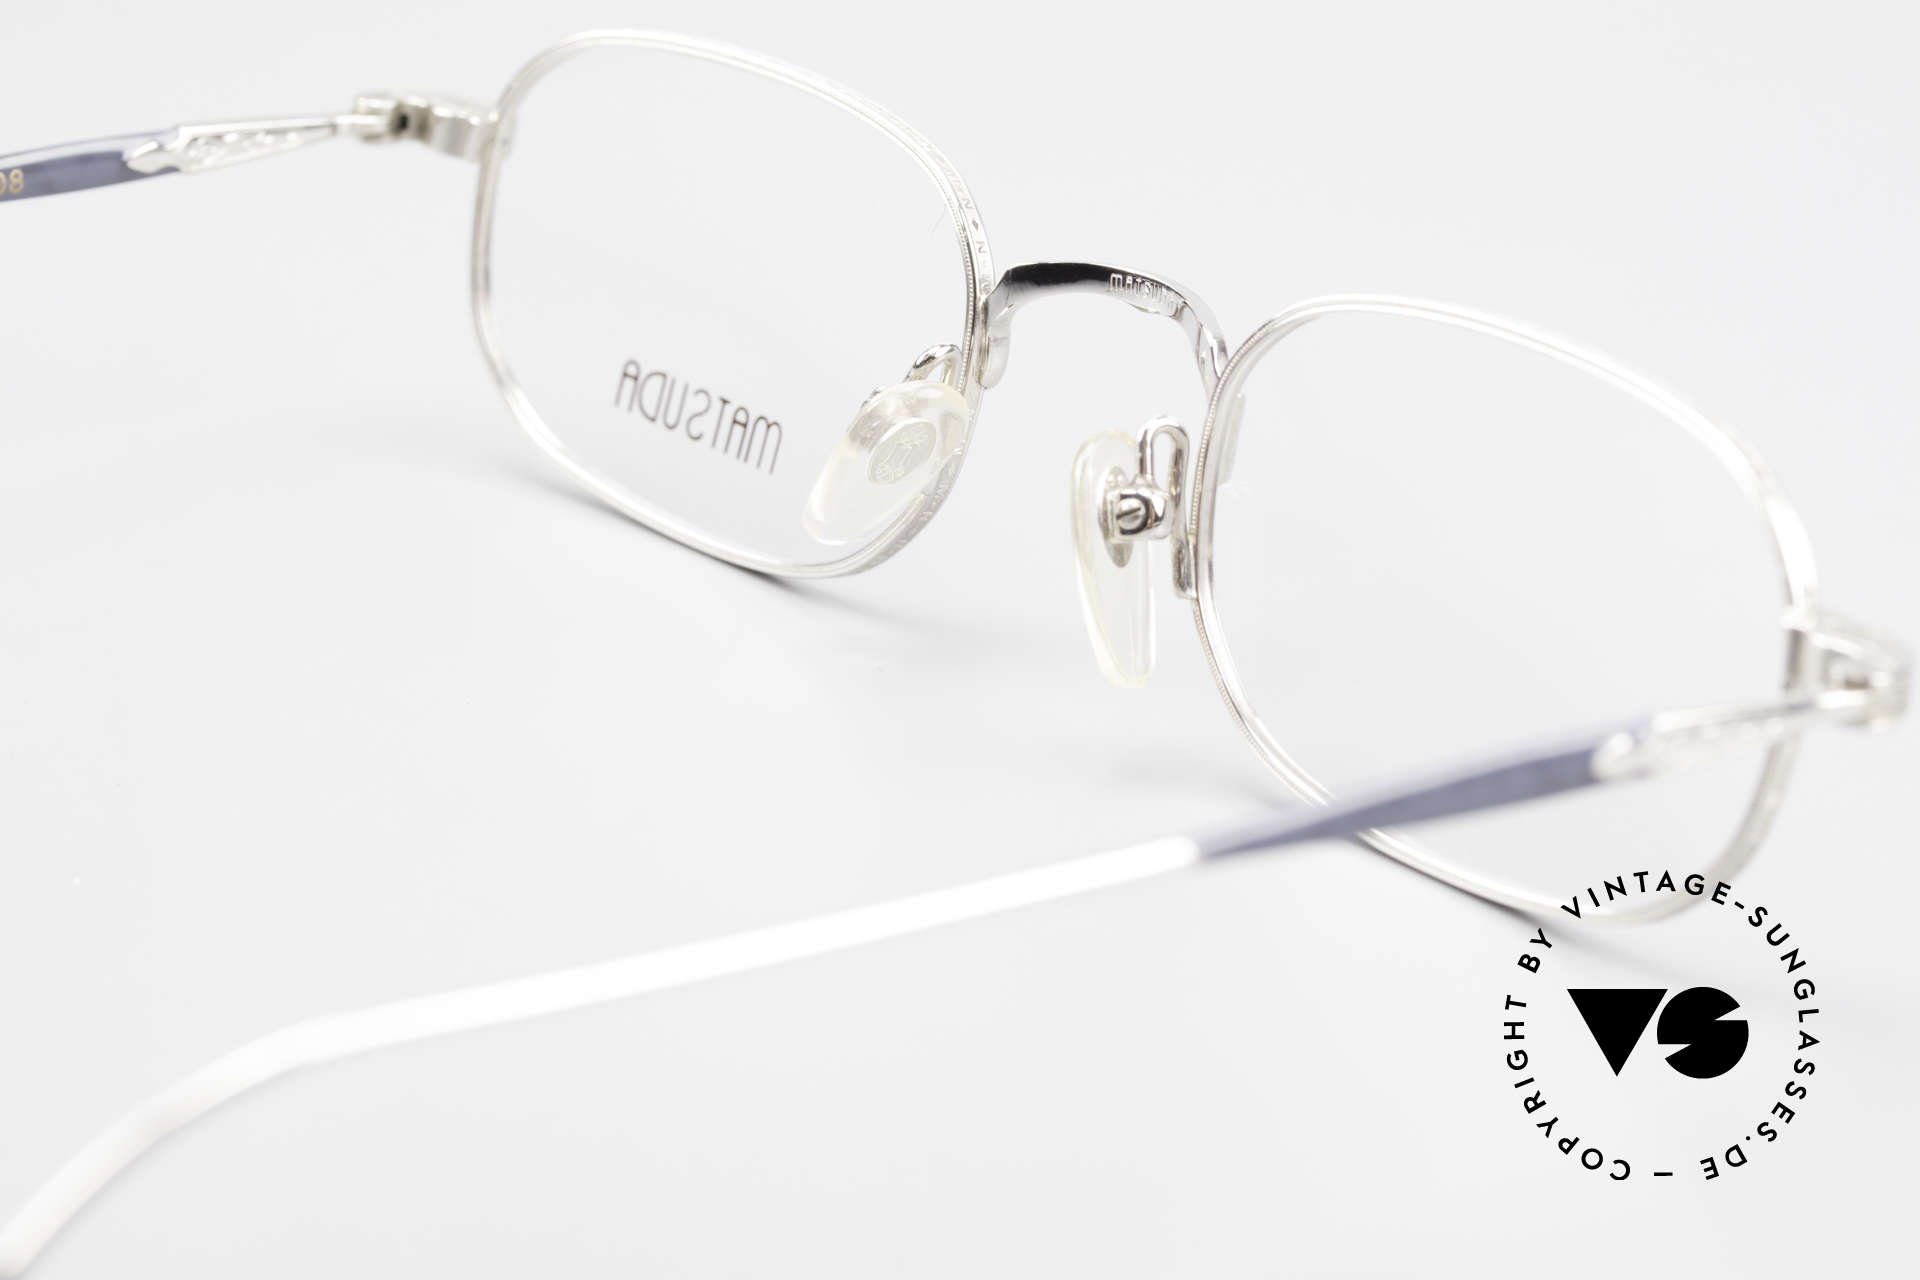 Matsuda 10108 90's Men's Eyeglasses High End, the DEMO lenses can be replaced with lenses of any kind, Made for Men